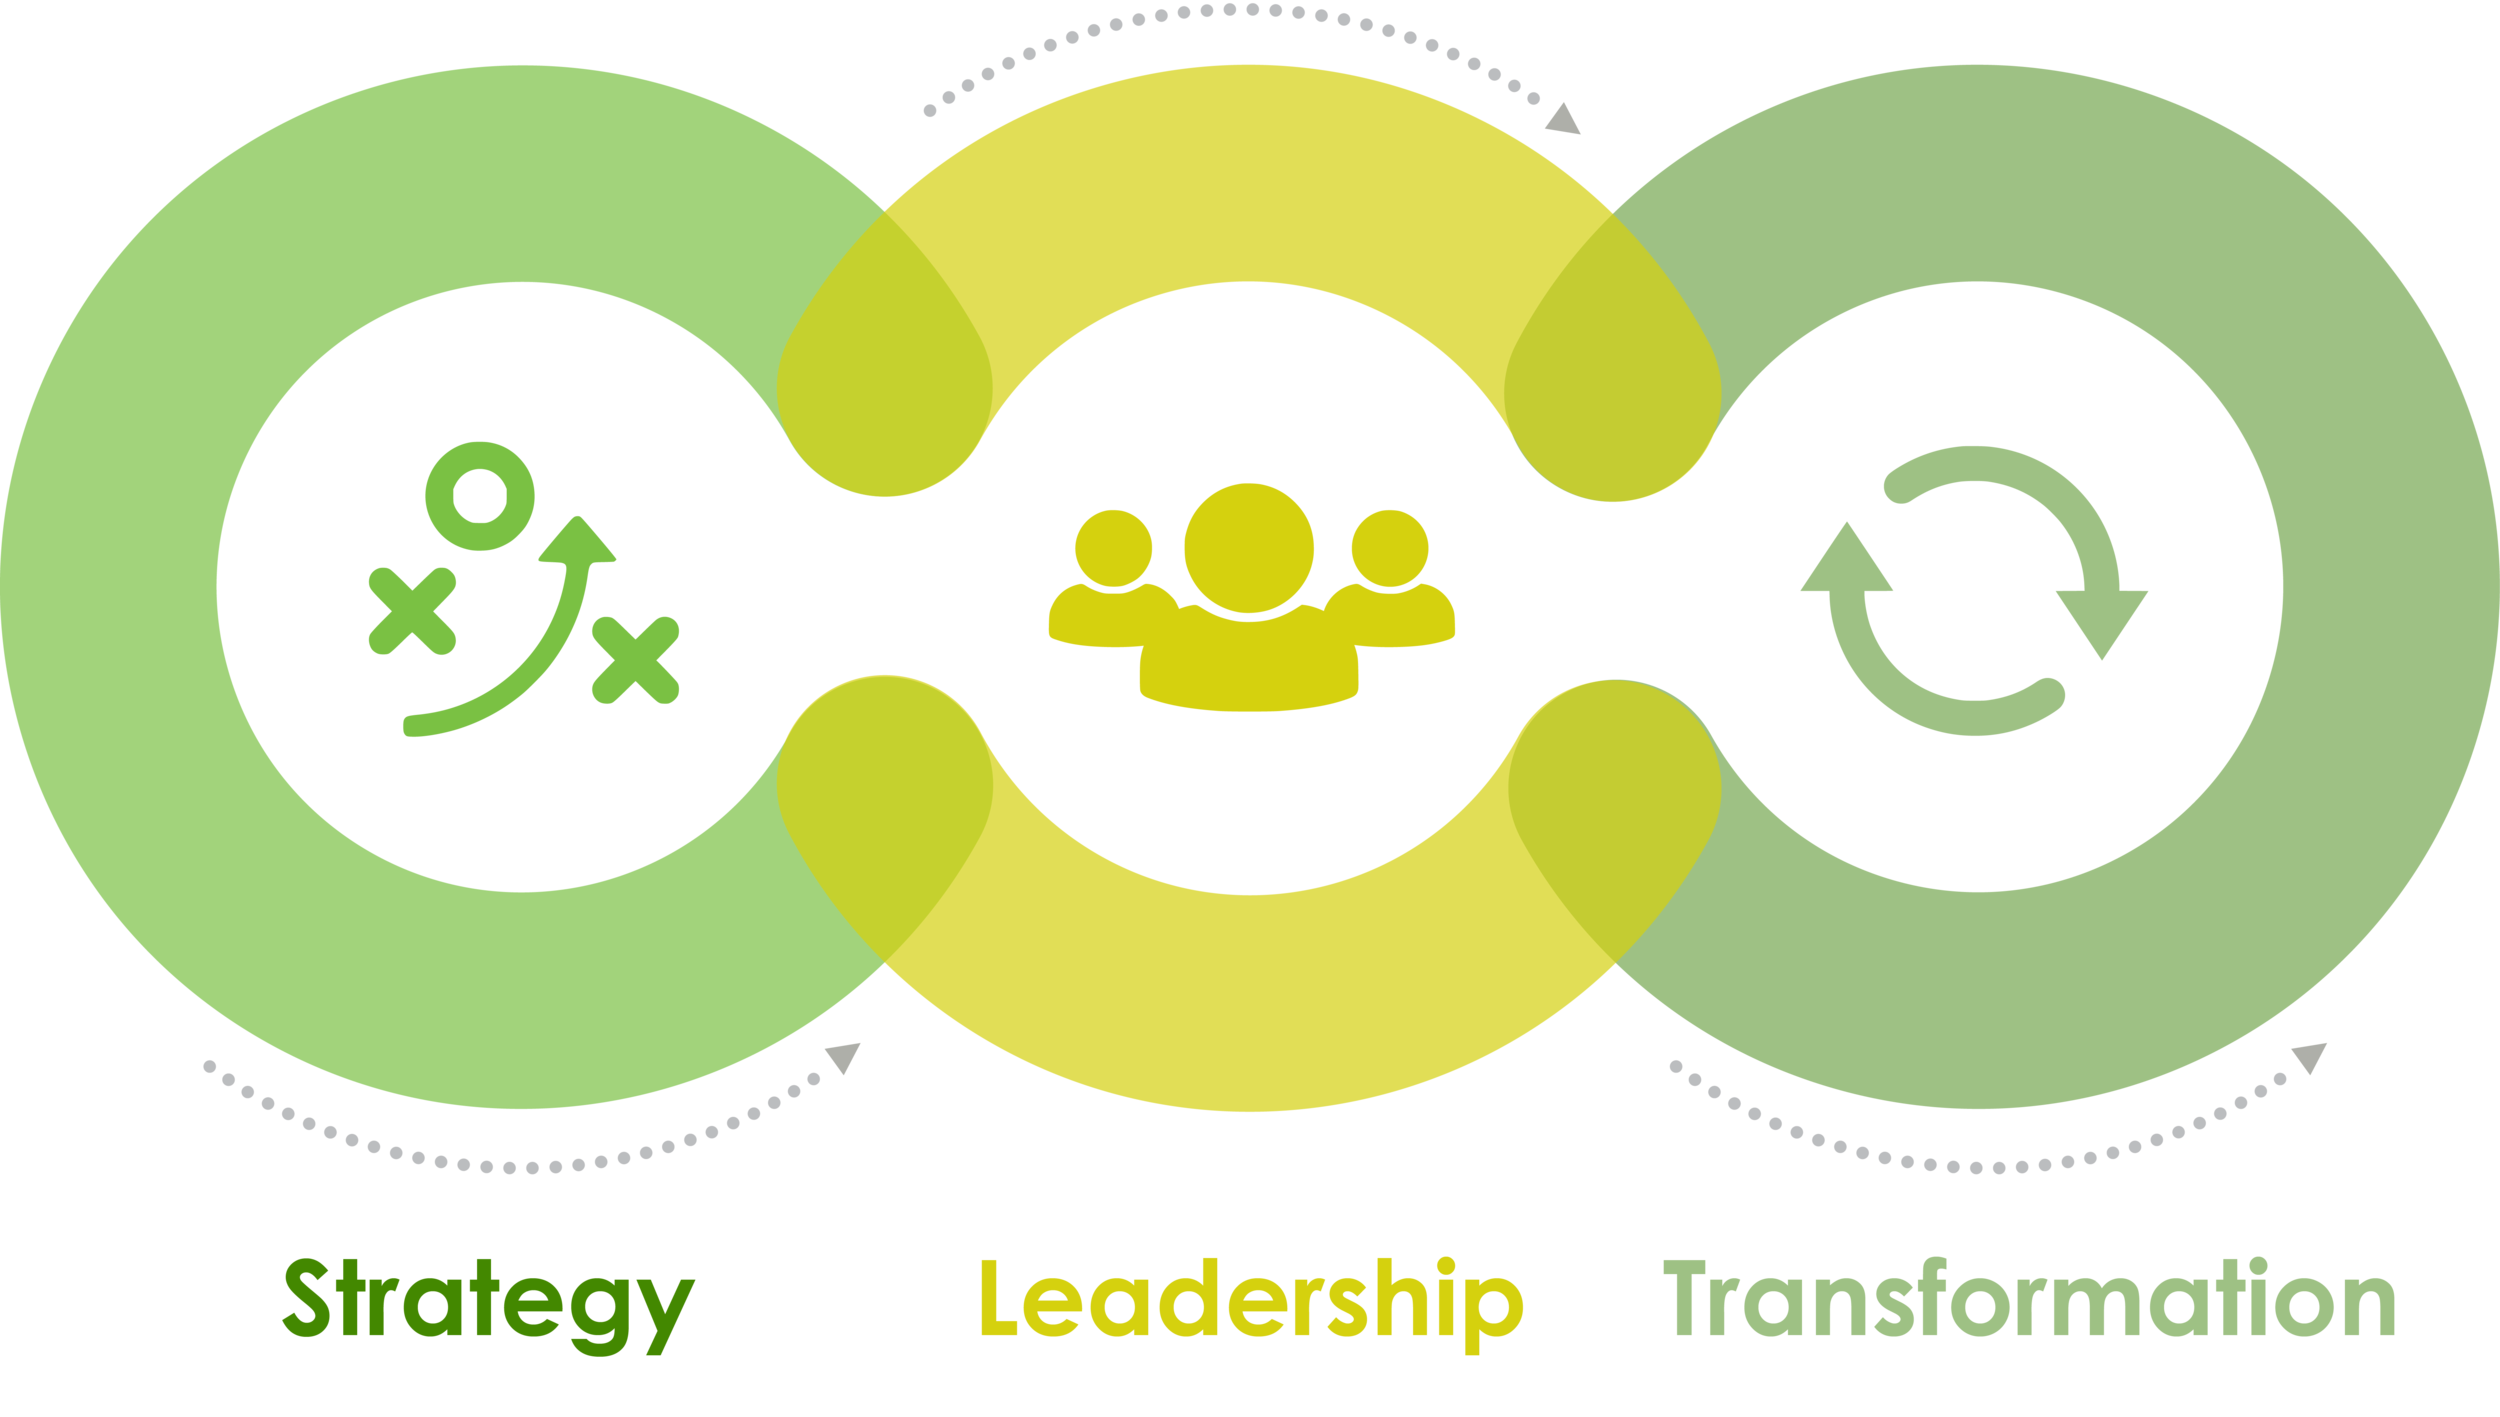 professional management consultants, strategy, leadership, transformation